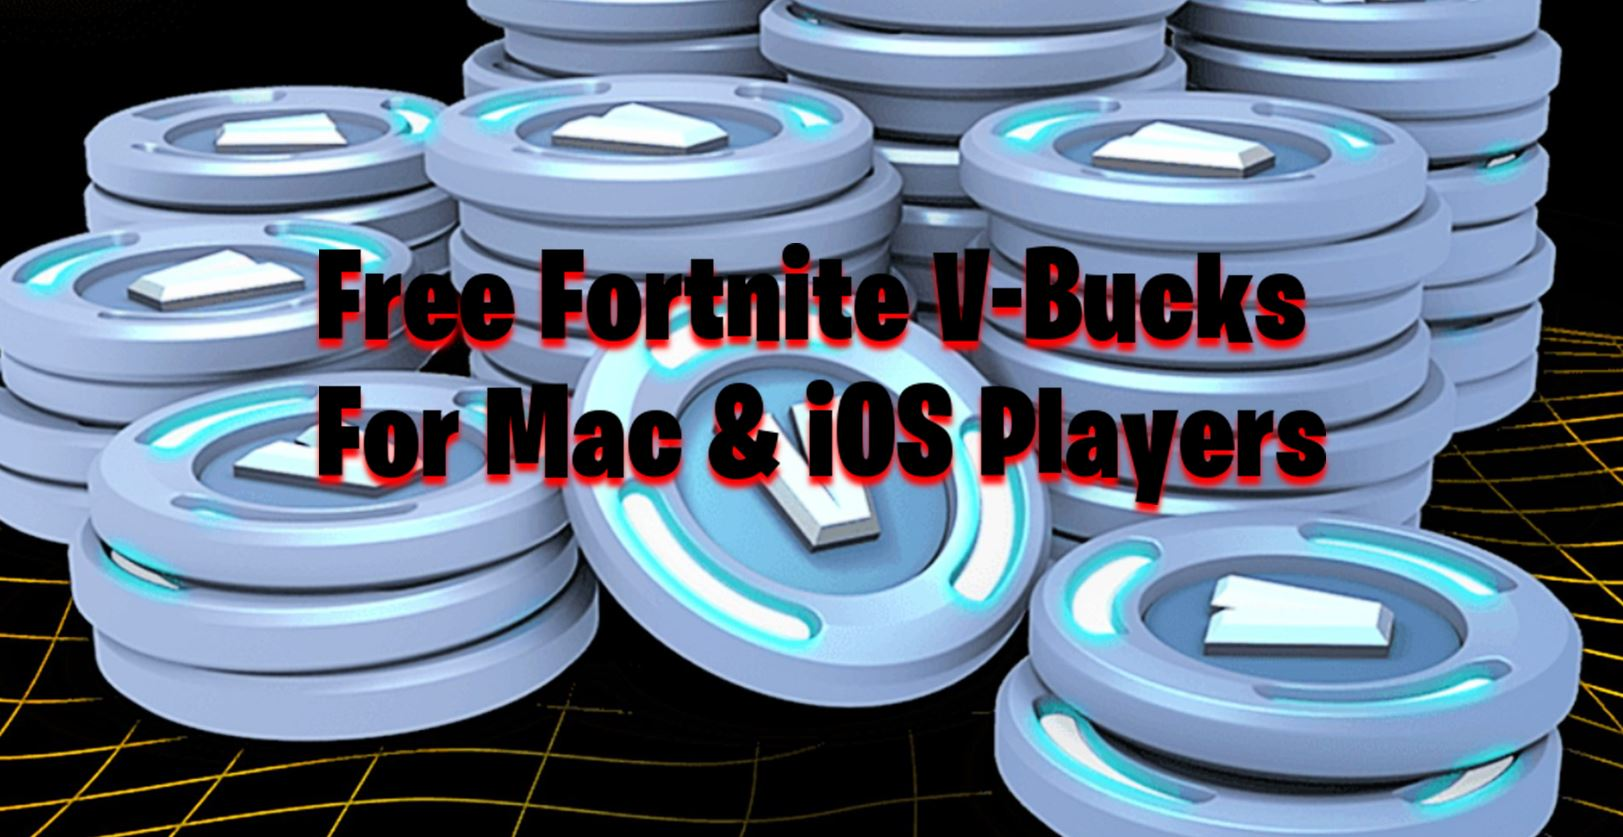 Free Fortnite V Bucks Epic Games Granting Ios And Mac Players V Bucks Fortnite Insider Free v bucks codes in fortnite battle royale chapter 2 game, is verry common question so, today i decided to show you how can you get vbucks for free. free fortnite v bucks epic games